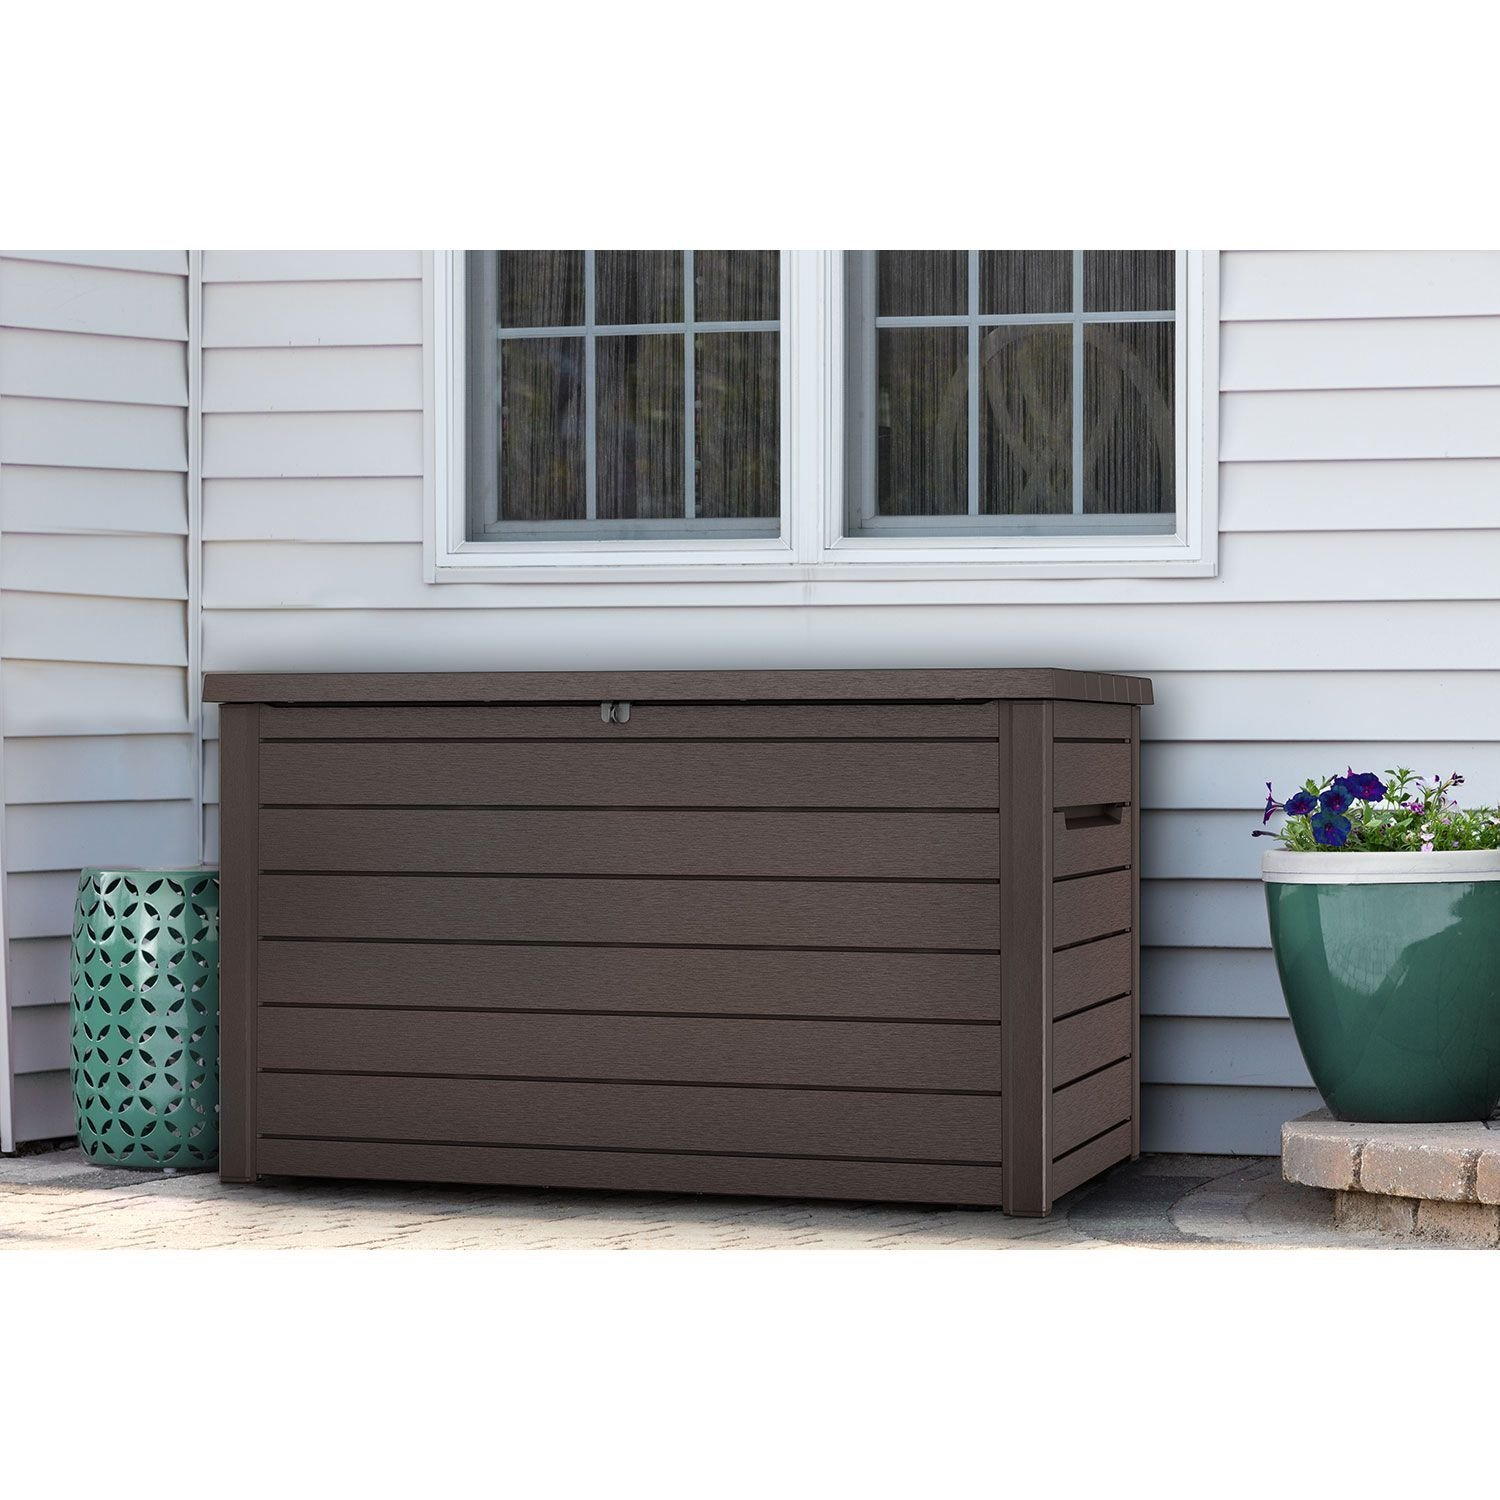 Keter XXL 230 Gallon Plastic Deck Storage Container Box Outdoor Patio Garden Furniture 870 Liters by Keter